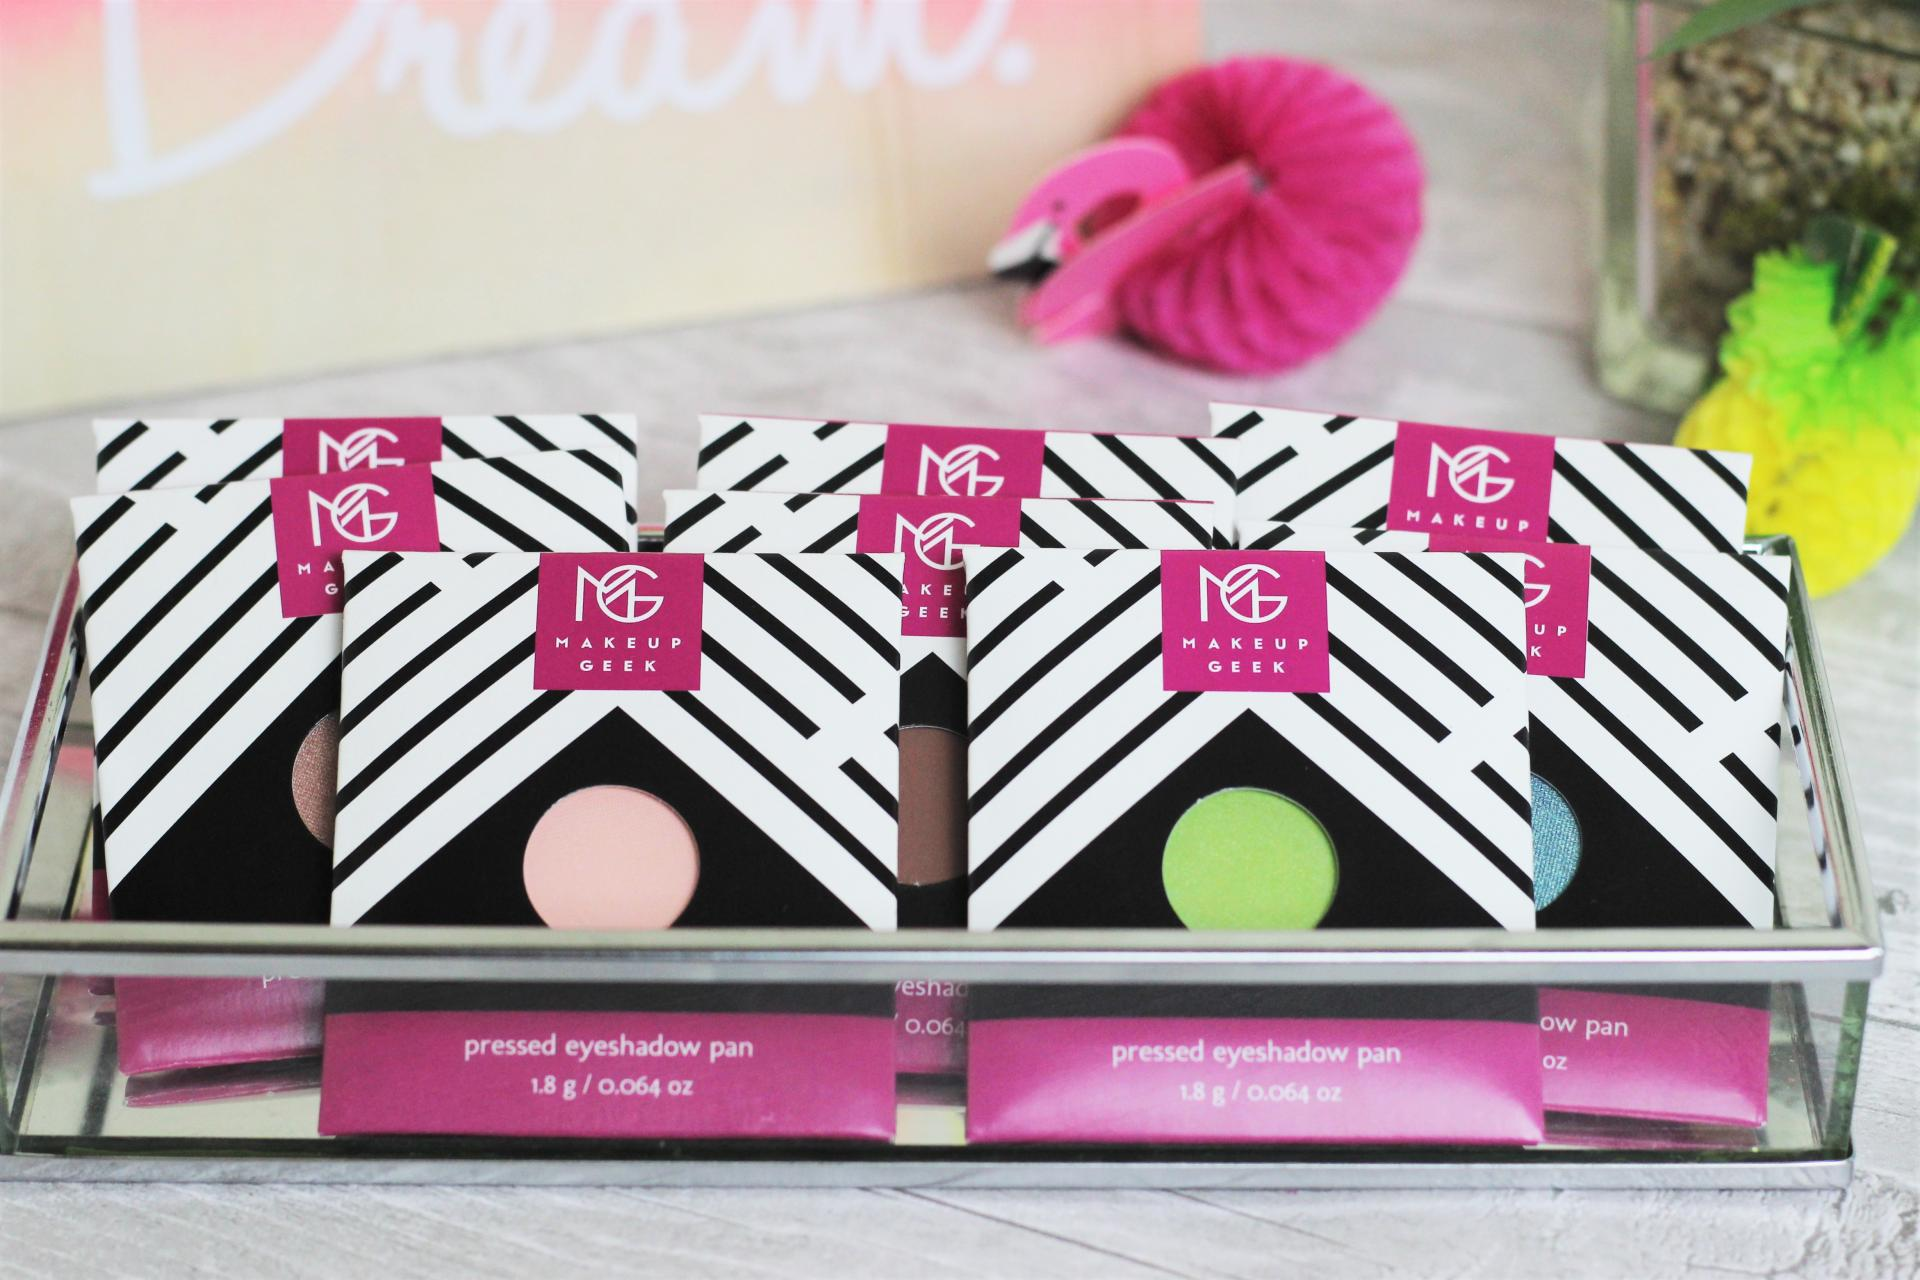 Revisiting Makeup Geek Eye Shadows